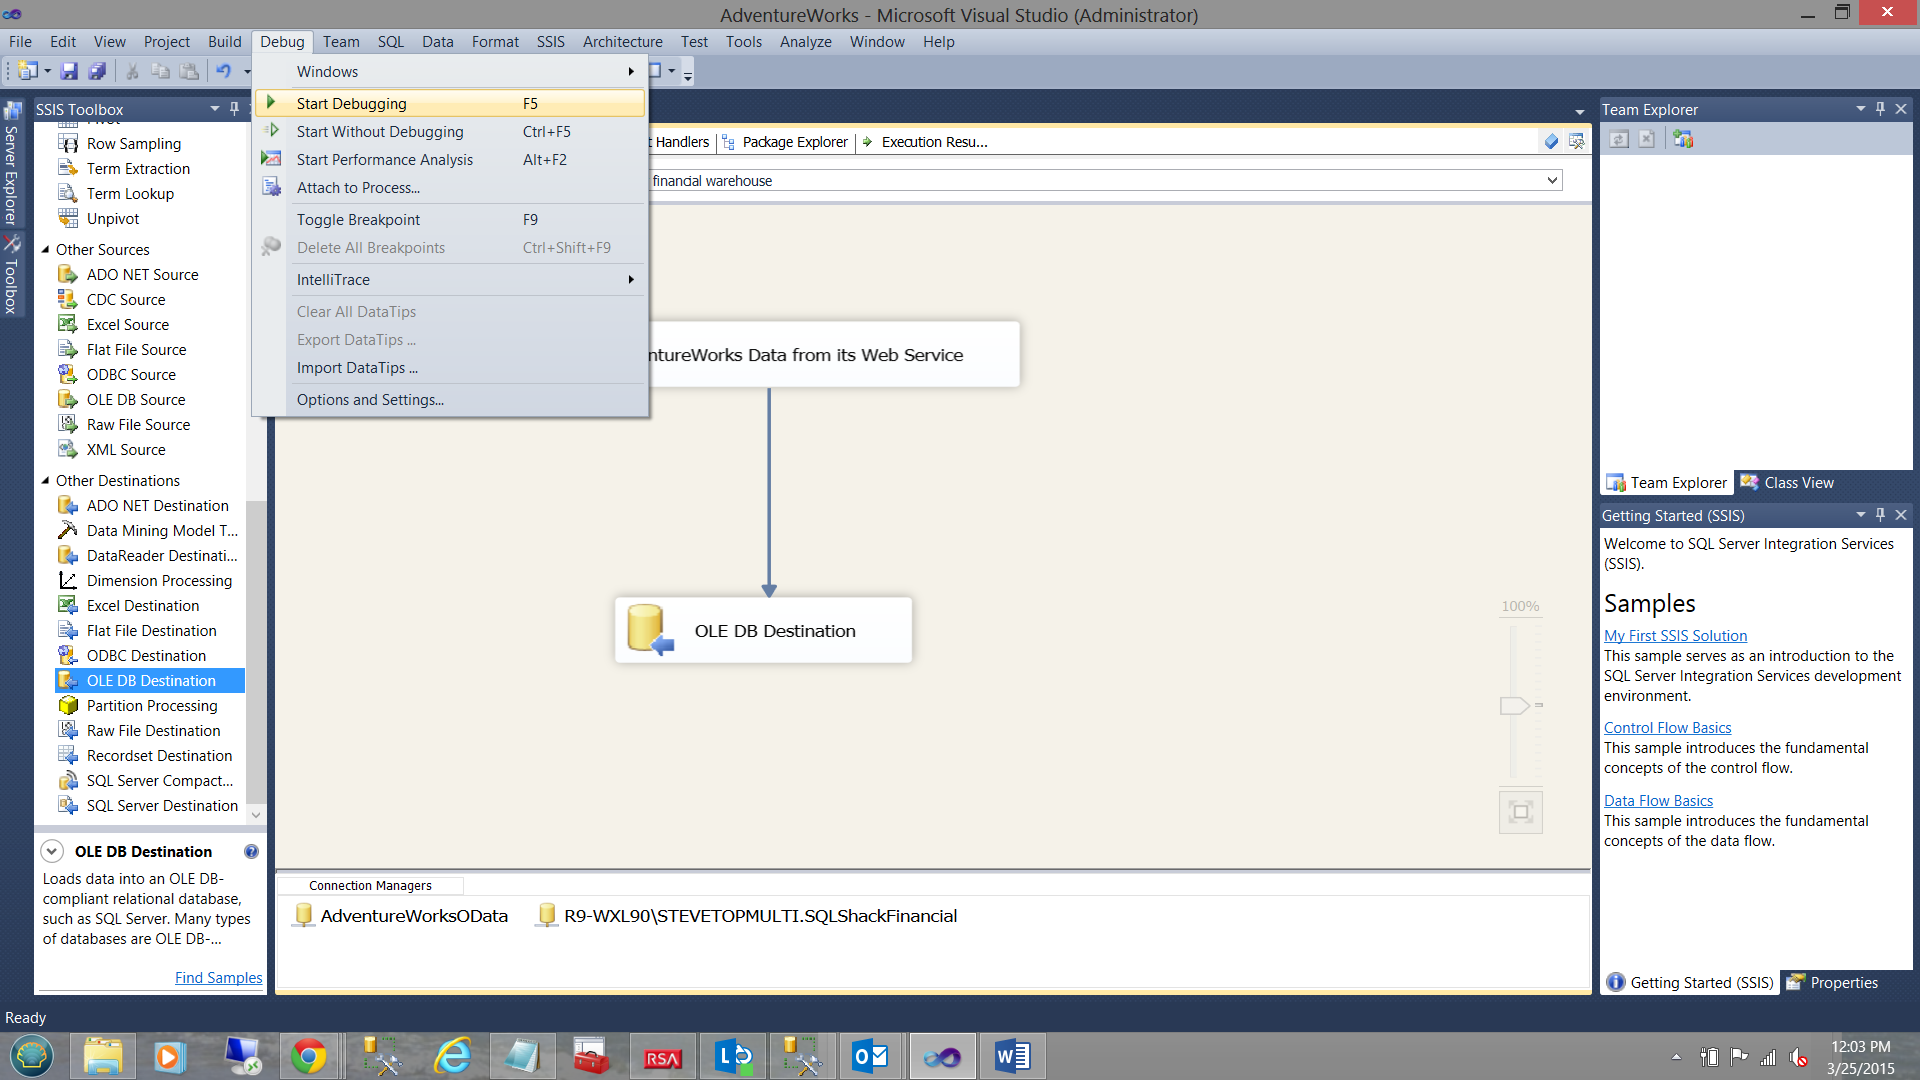 How to import data into SQL Server databases using the OData